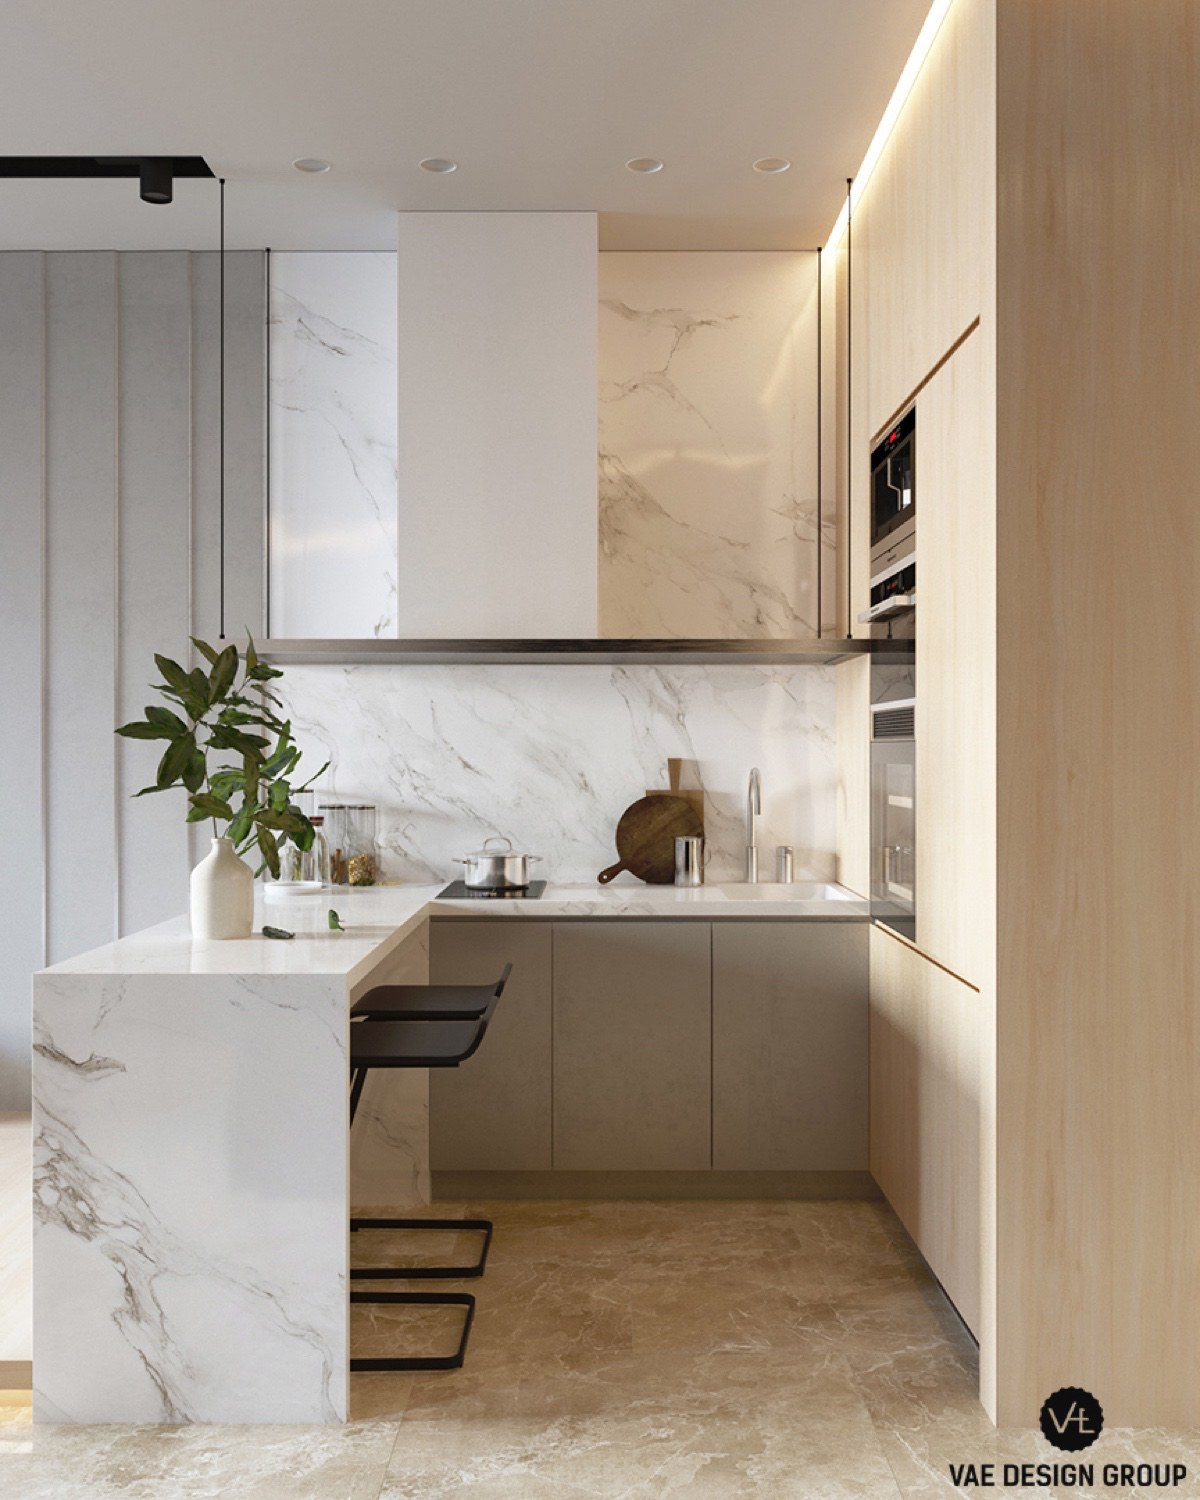 Marble Top Wooden Cabinet Earthy Kitchen - 3 small studio apartments that exude luxurious space